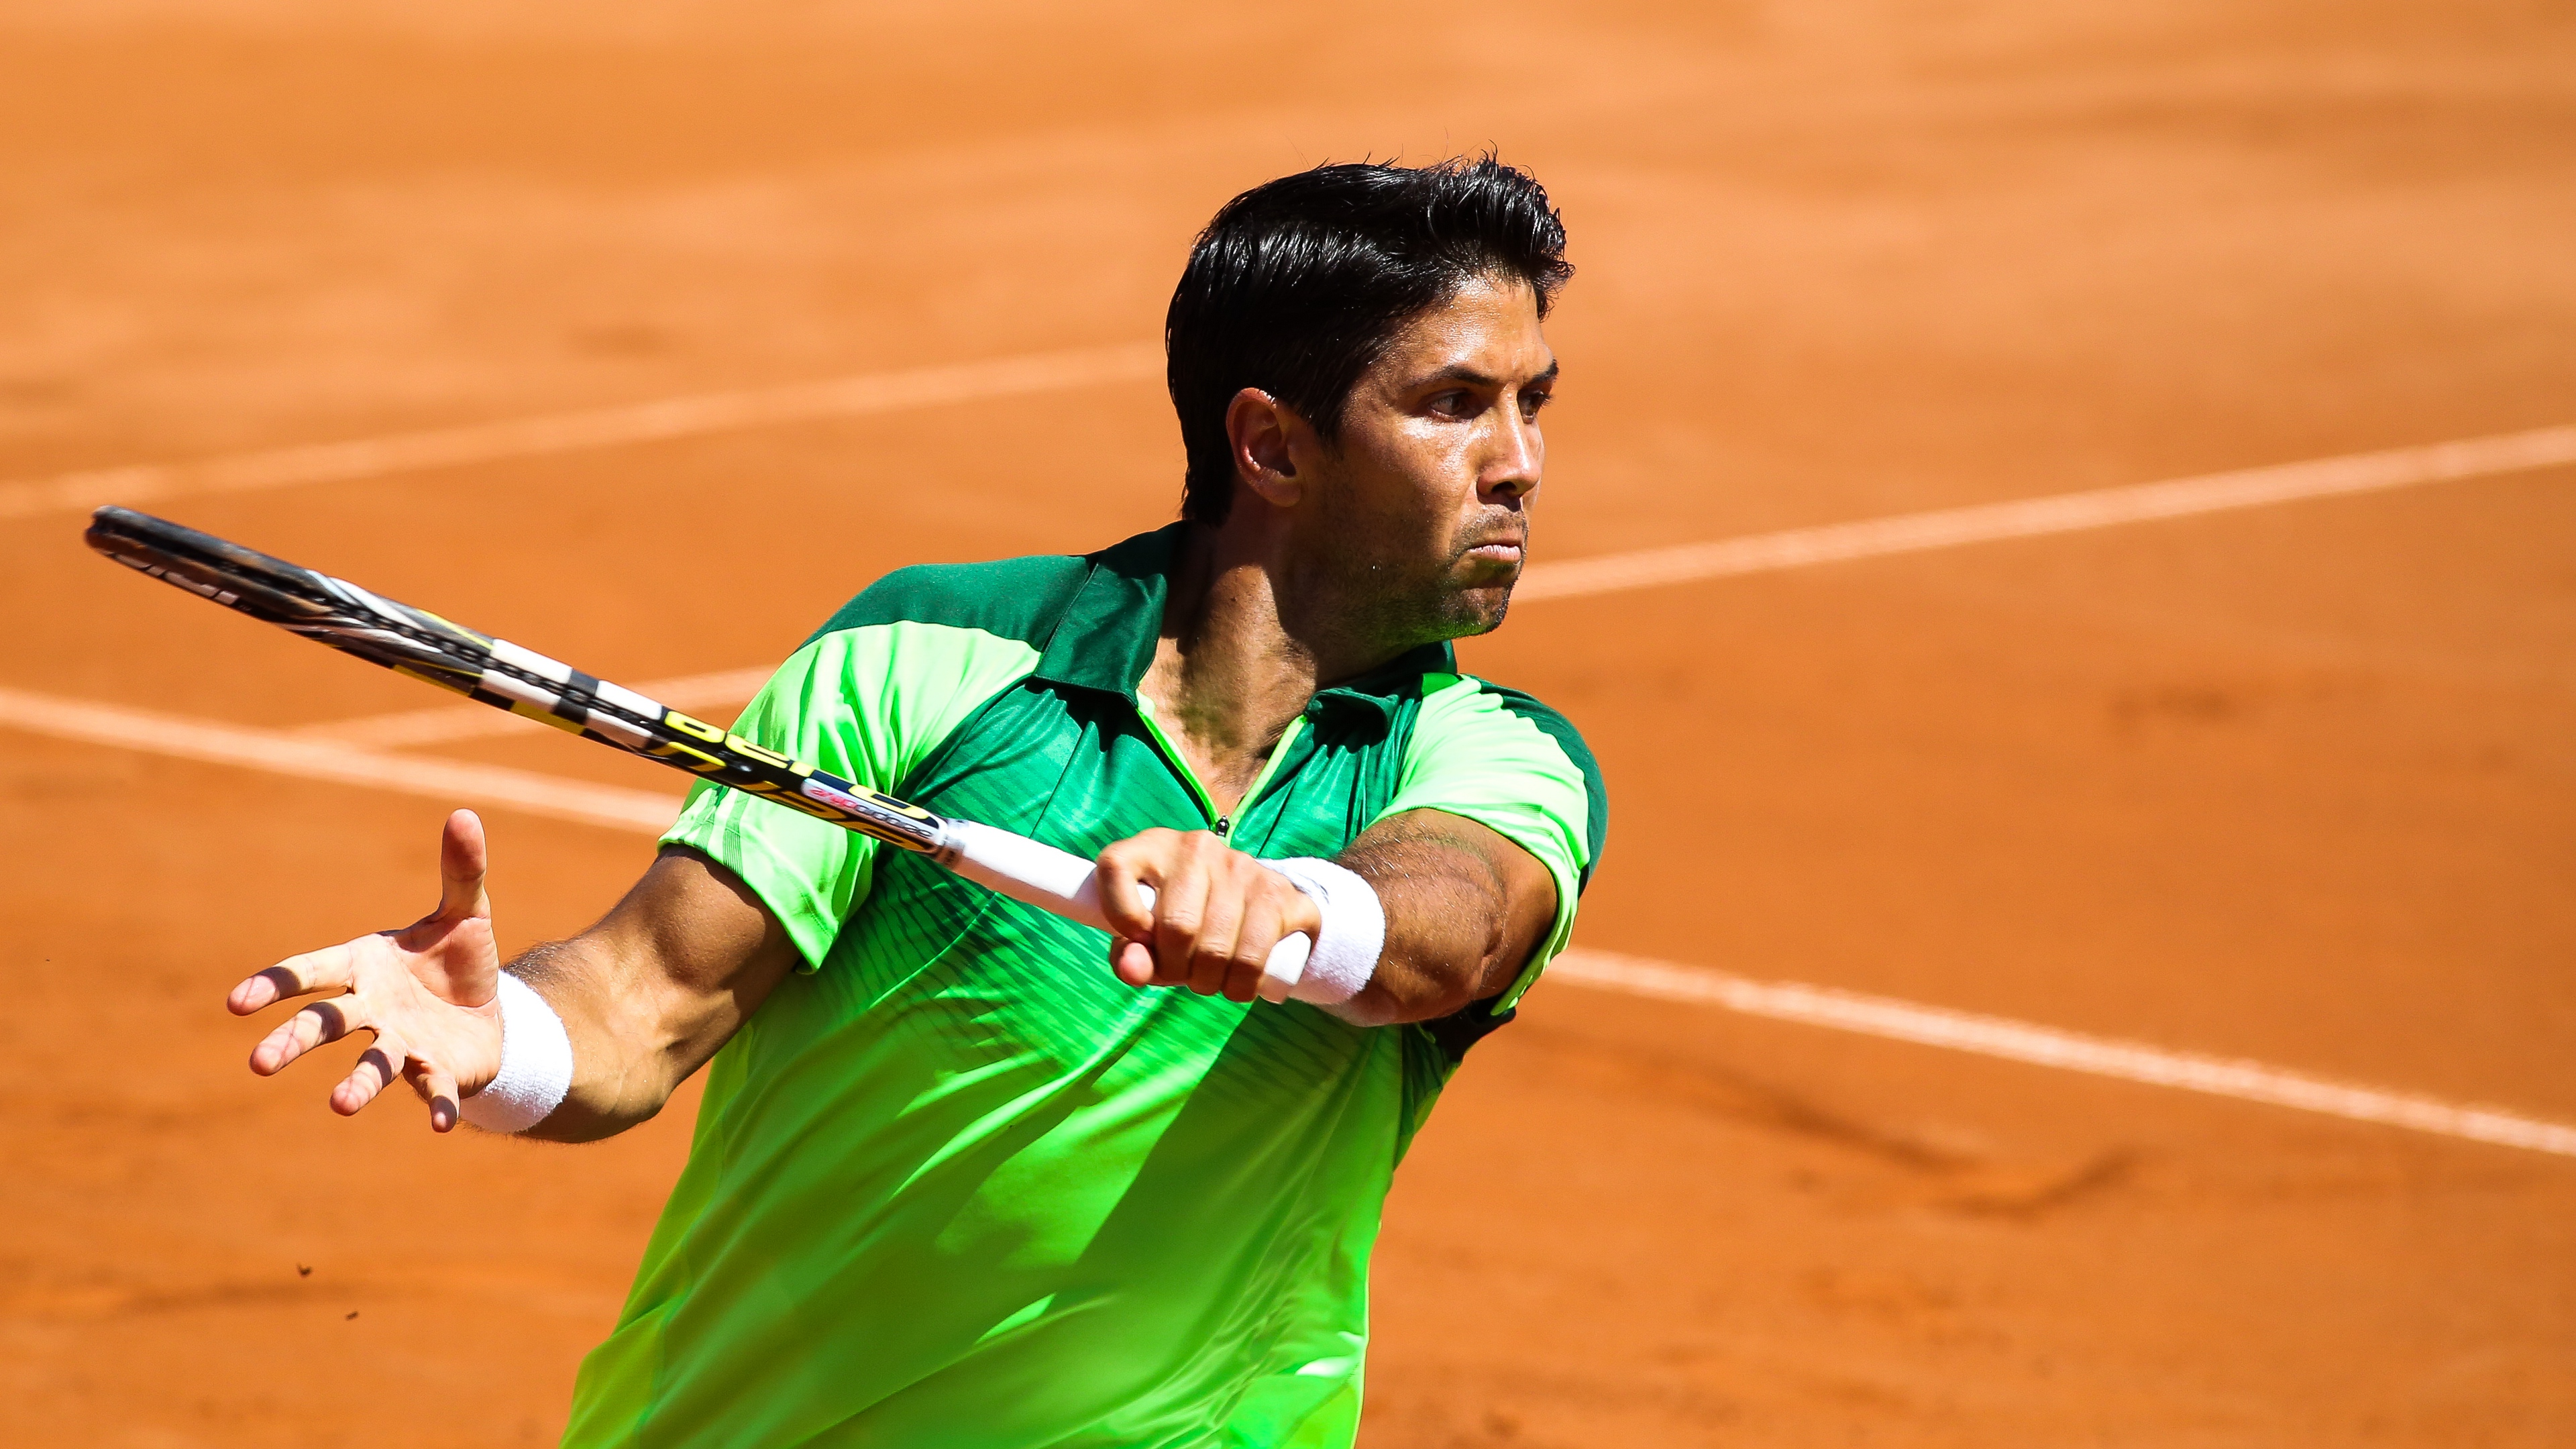 fernando verdasco tennis tennis player 4k 1540060860 - fernando verdasco, tennis, tennis player 4k - tennis player, Tennis, fernando verdasco